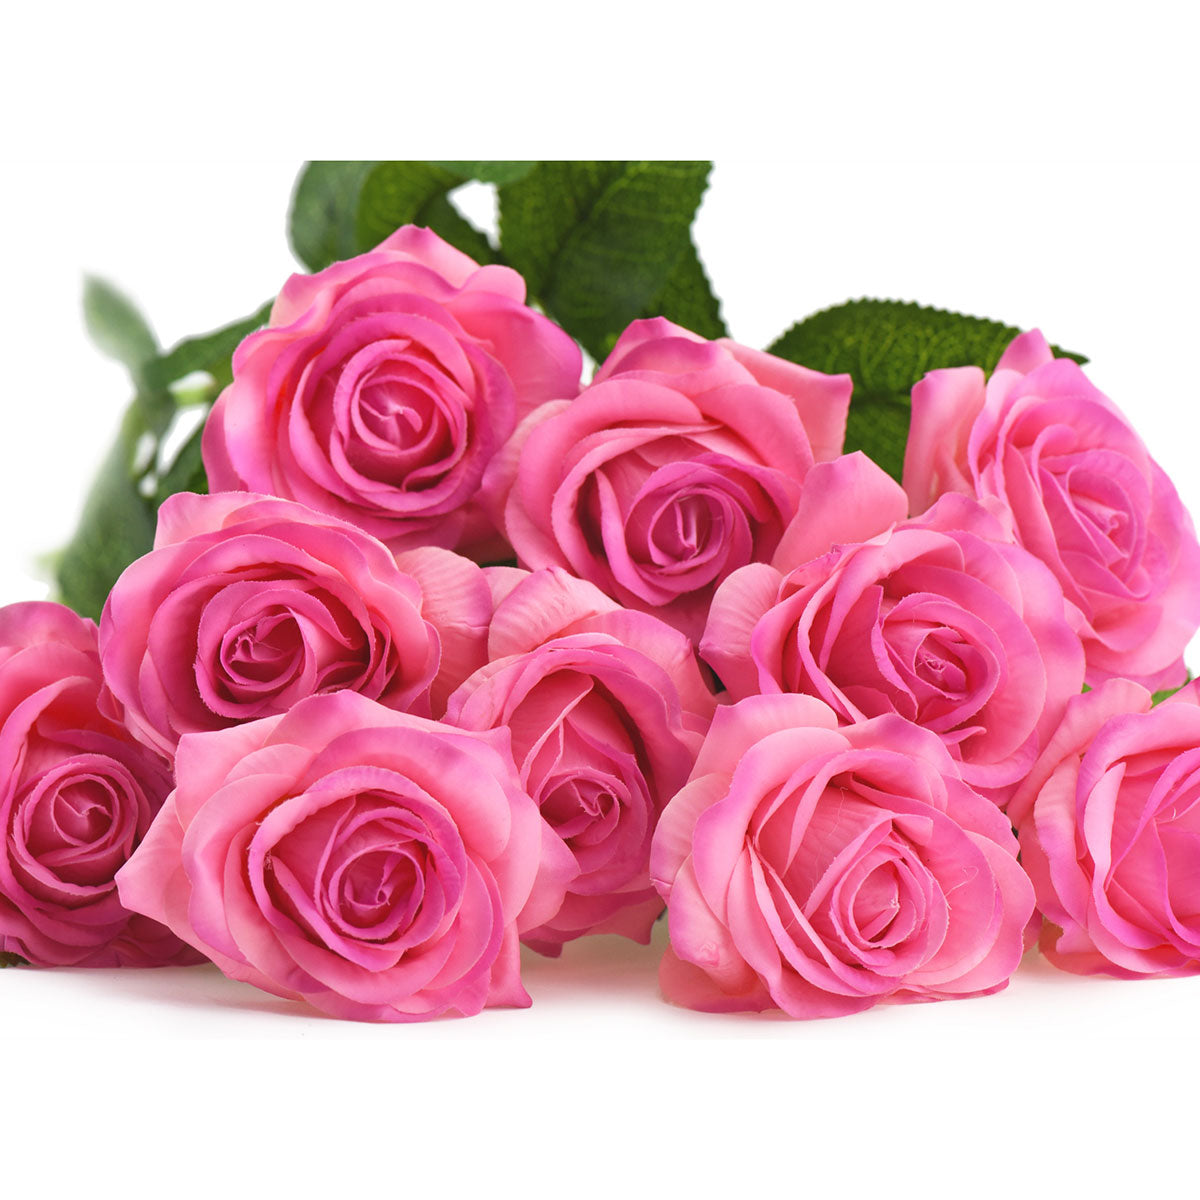 Magenta Real Touch Silk Artificial Flowers 'Petals Feel and Look like Fresh Roses 10 Stems